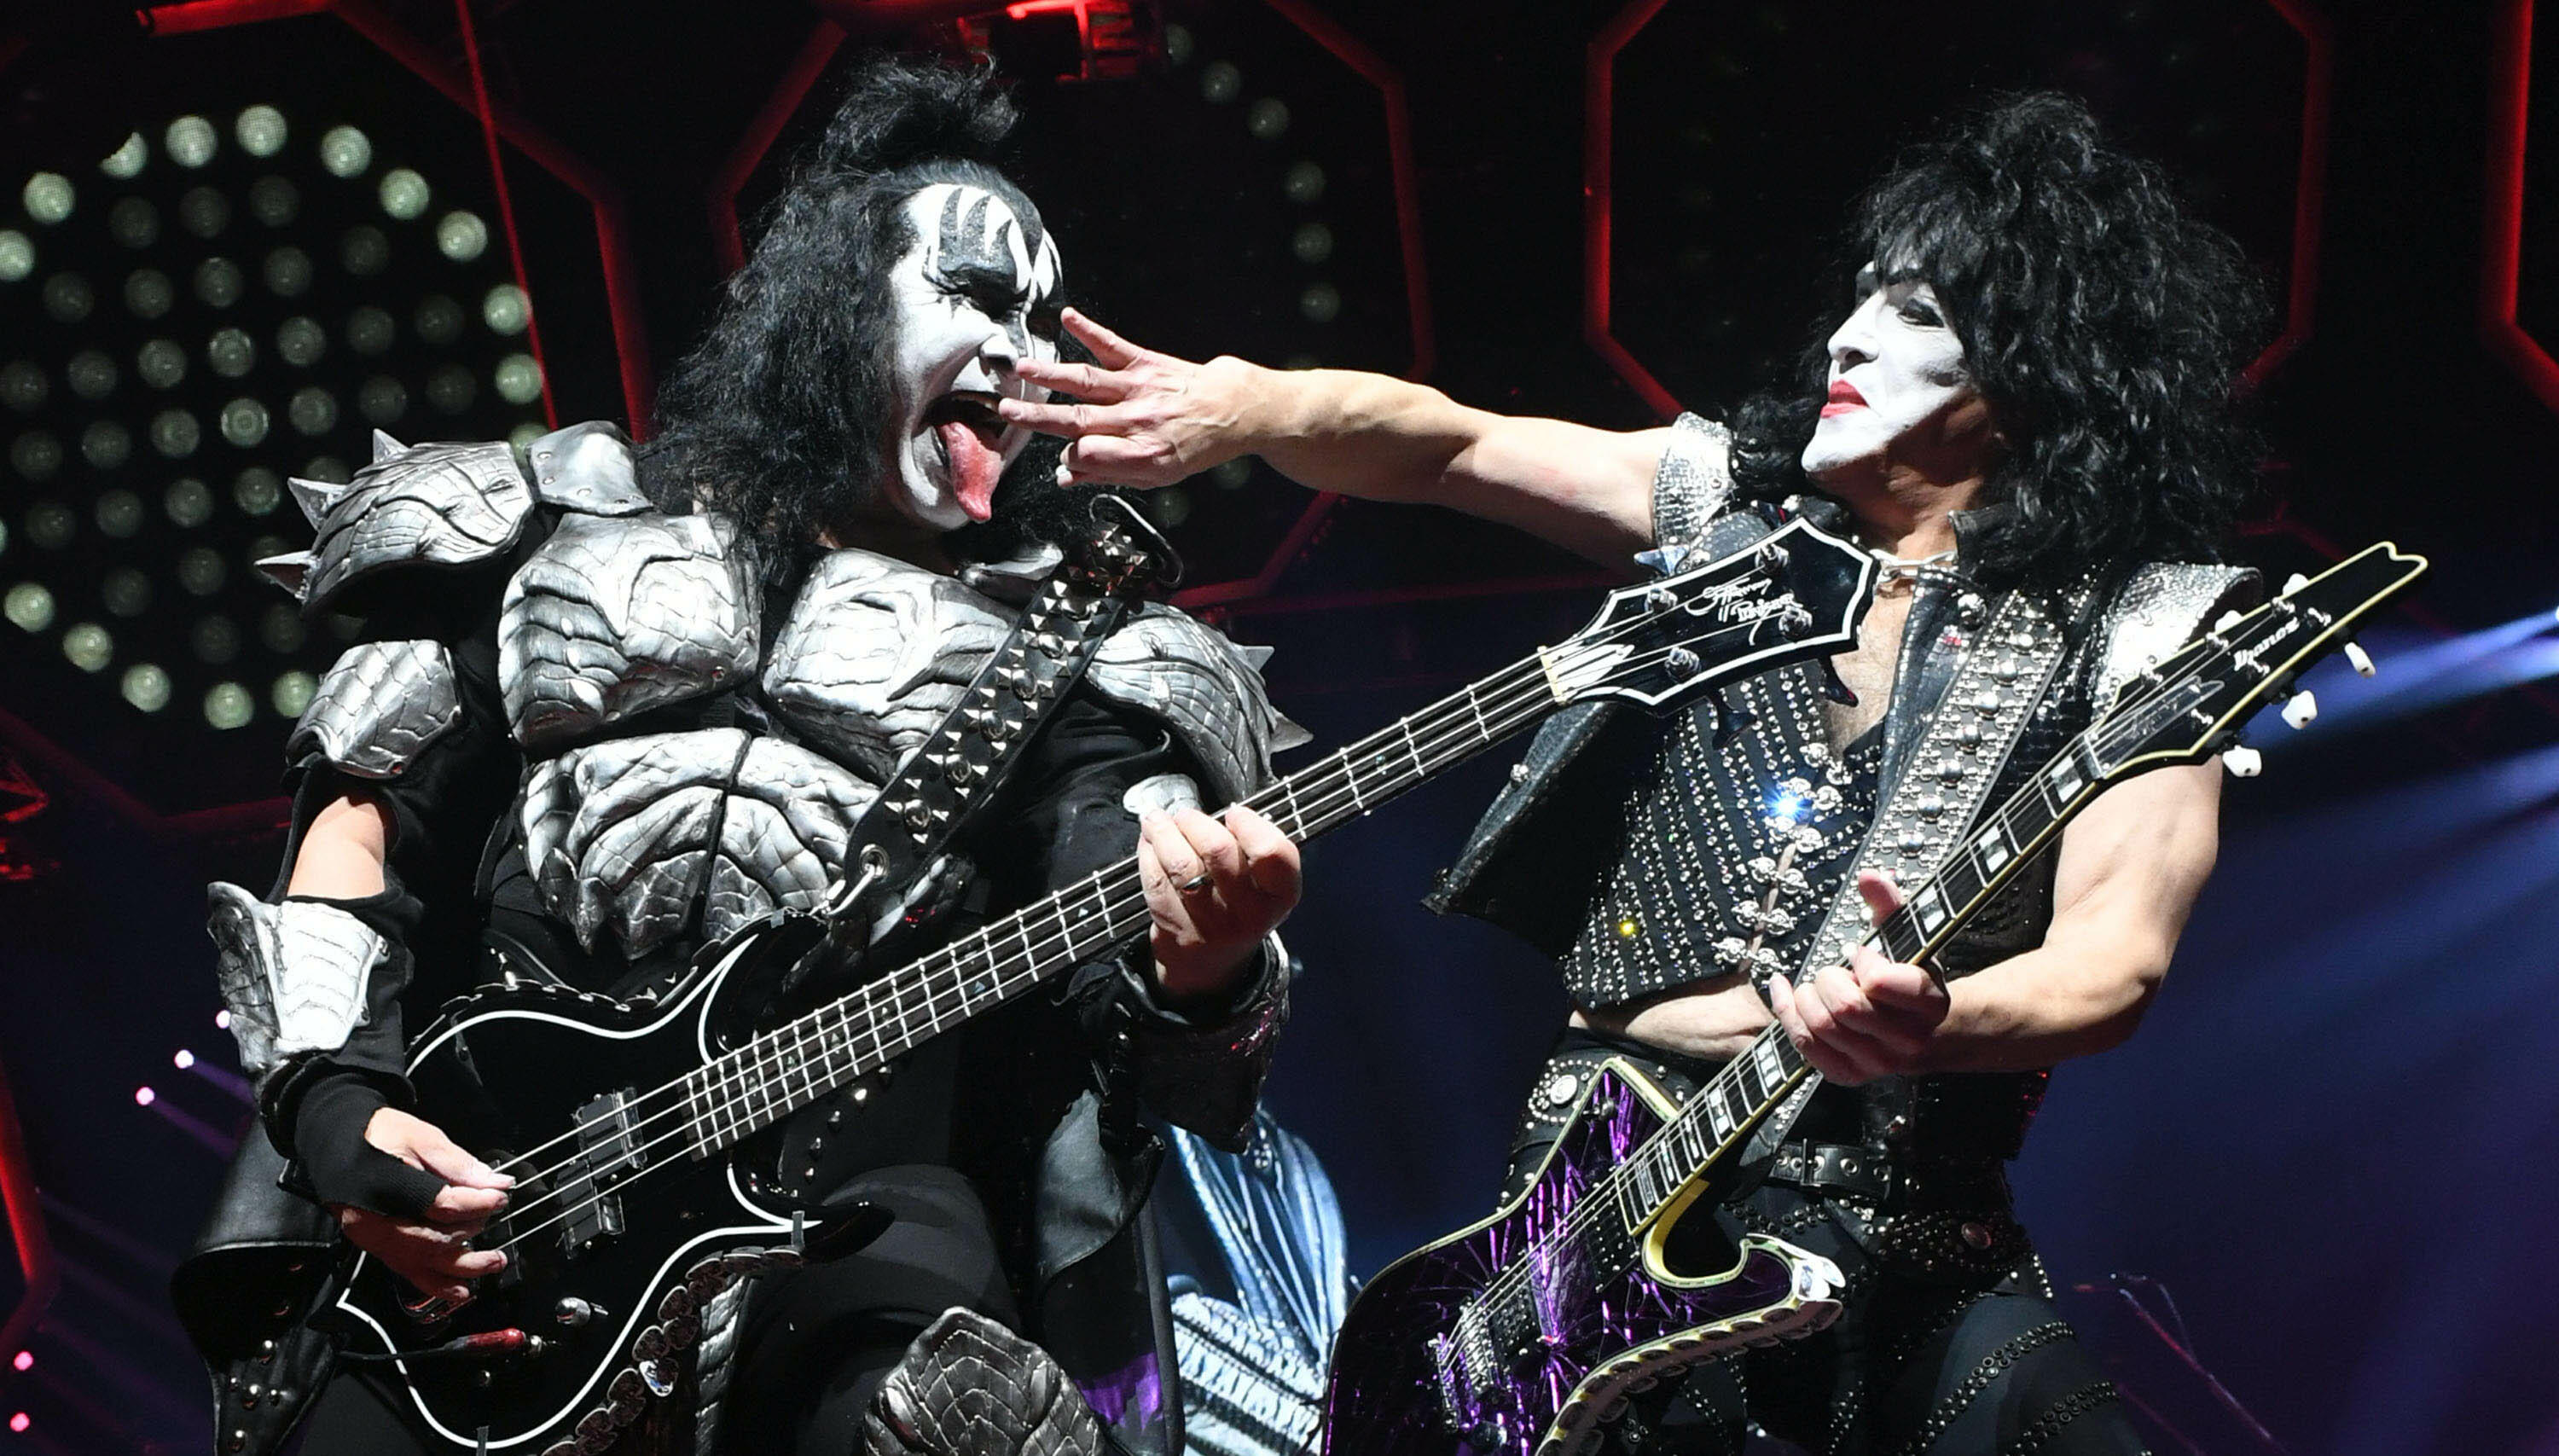 KISS Reschedules Five Tour Dates Postponed Due To COVID